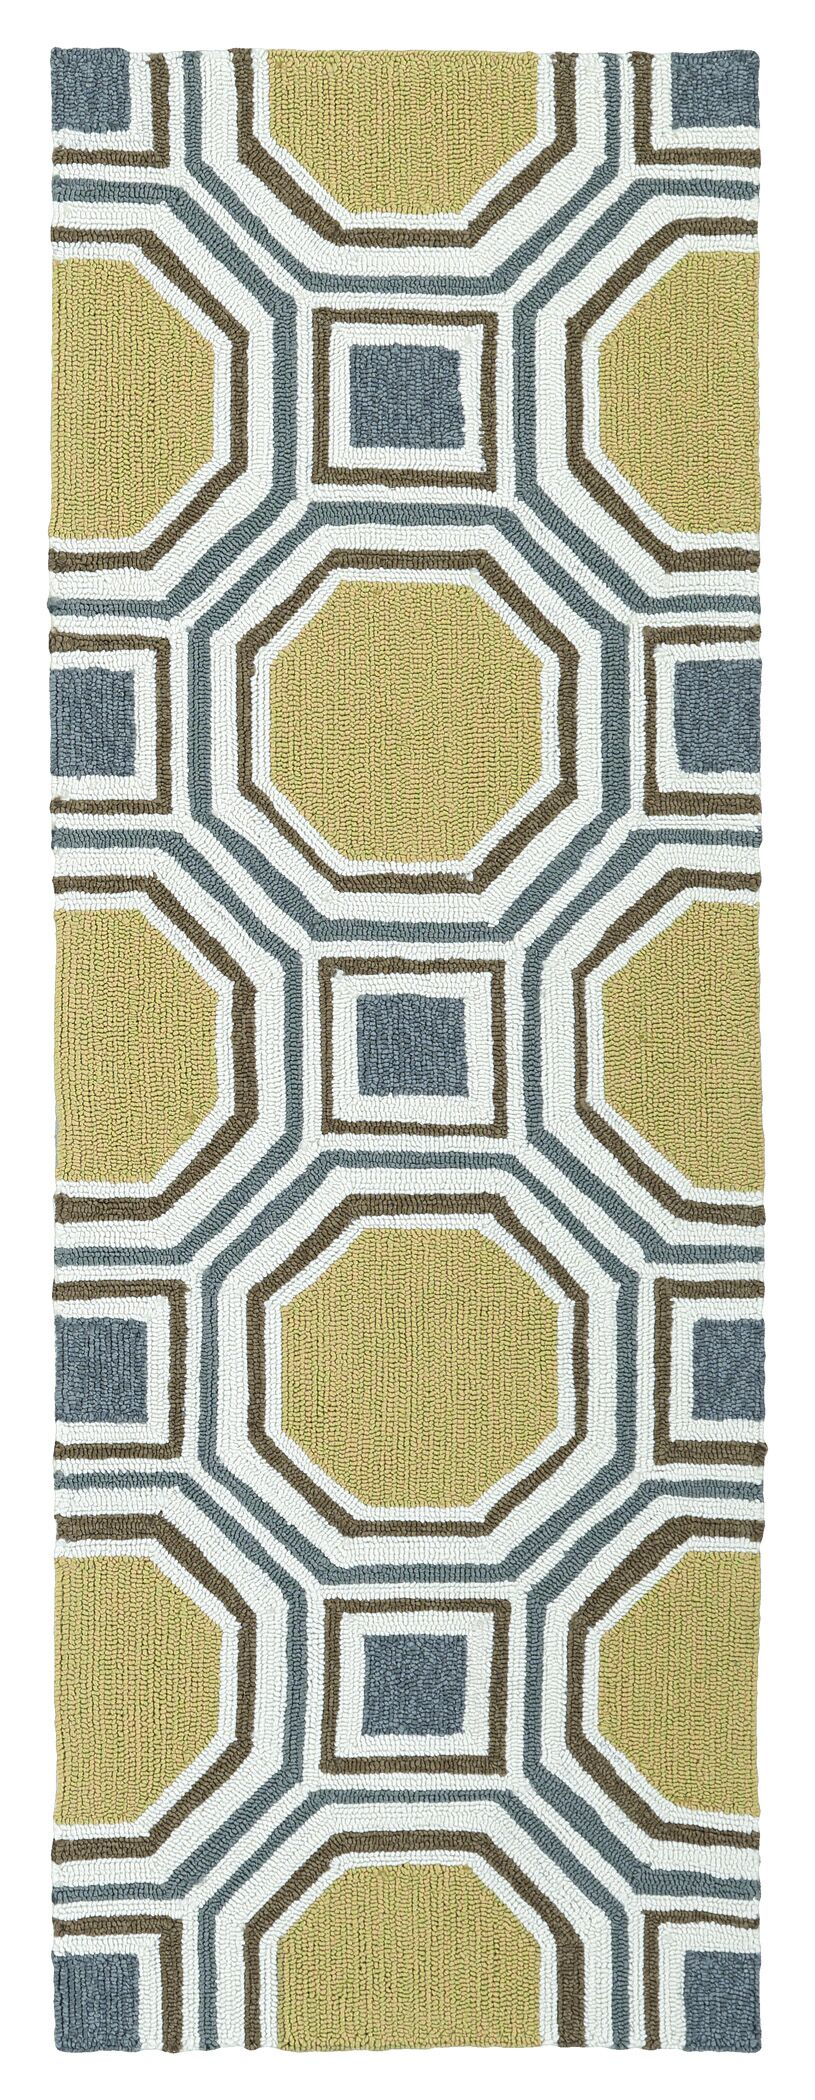 Doylestown Hand-Tufted Gold Indoor/Outdoor Area Rug Rug Size: Rectangle 8' x 10'